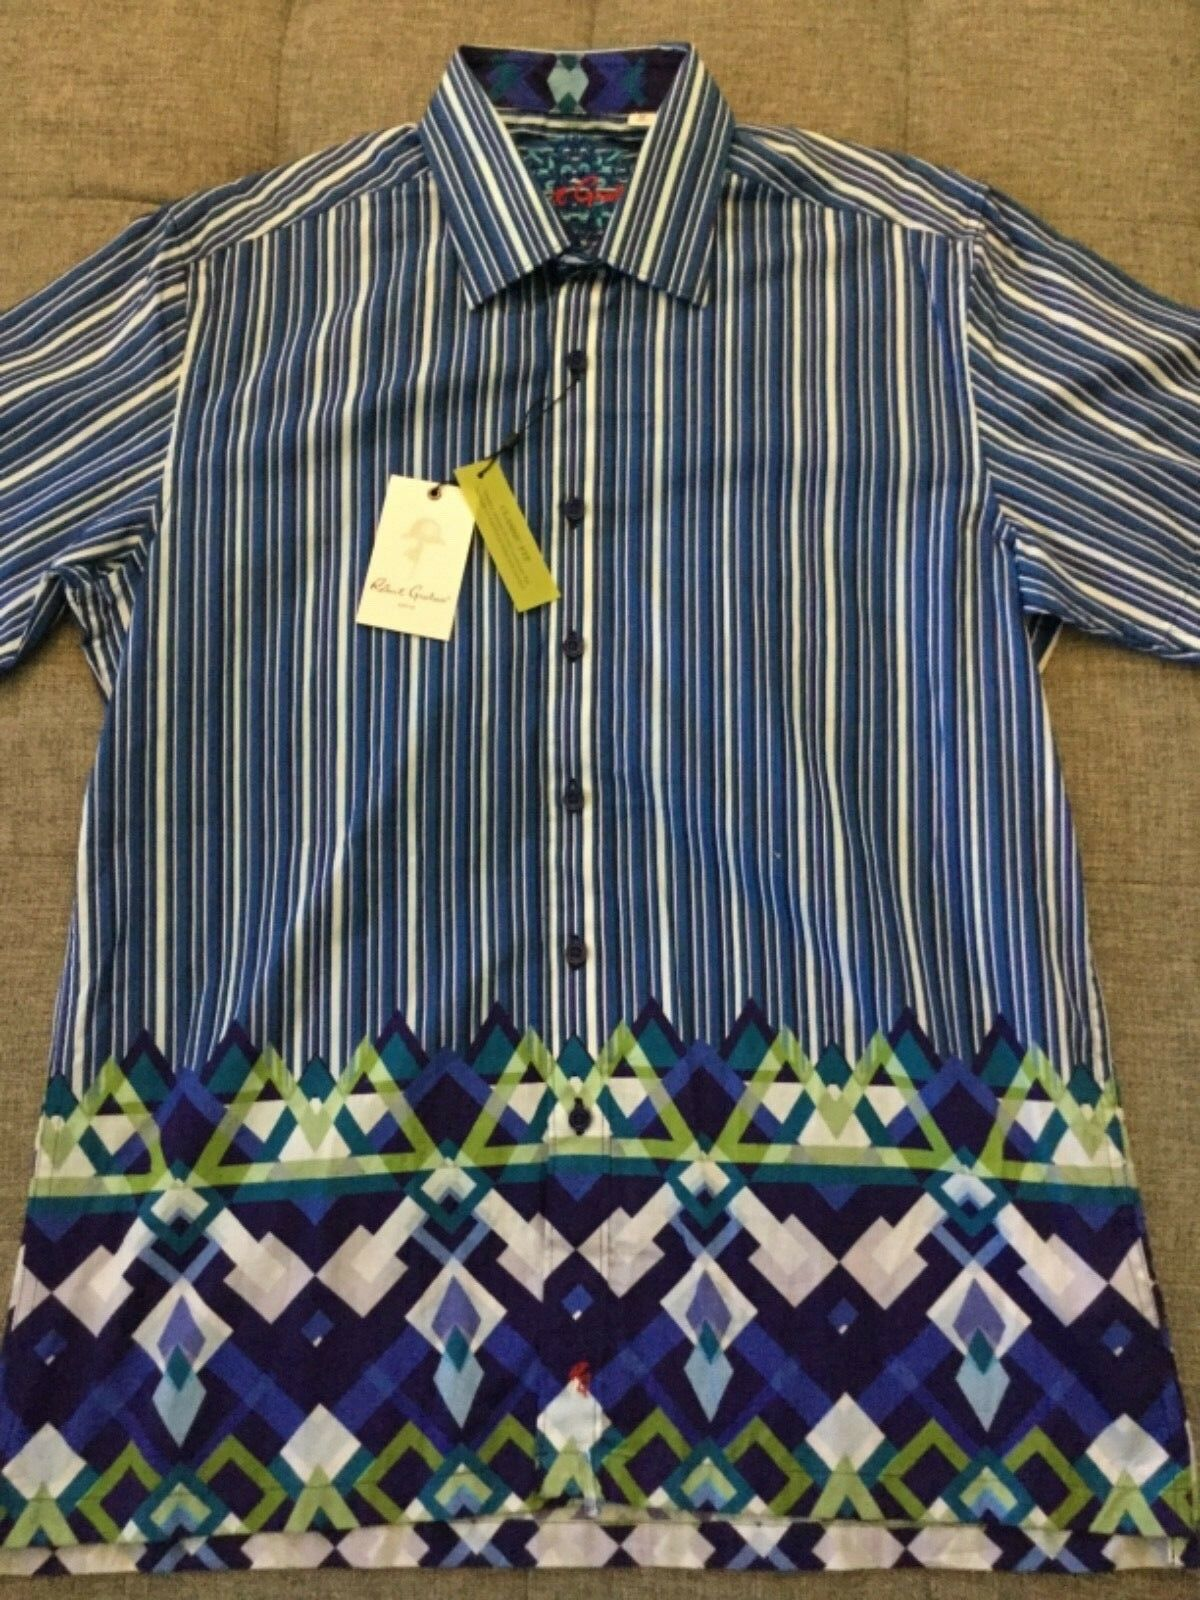 "2a66ed98 ROBERT GRAHAM Amble"" bluee & White STRIPES S S Cotton SHIRT sz M NWT Ret"